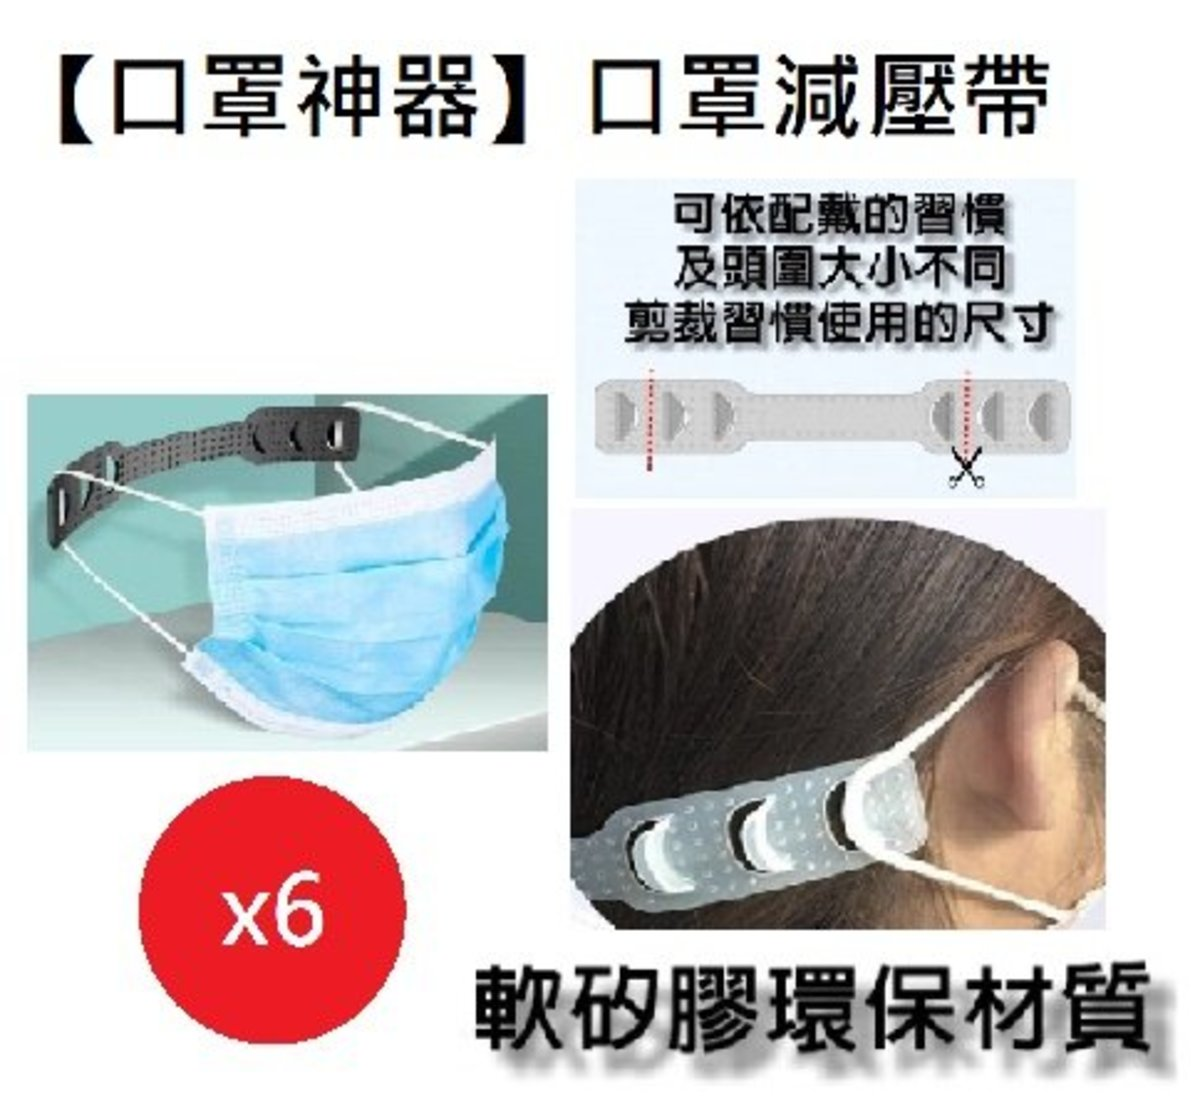 (x6)Mask decompression strap (Adjustable)(random color)